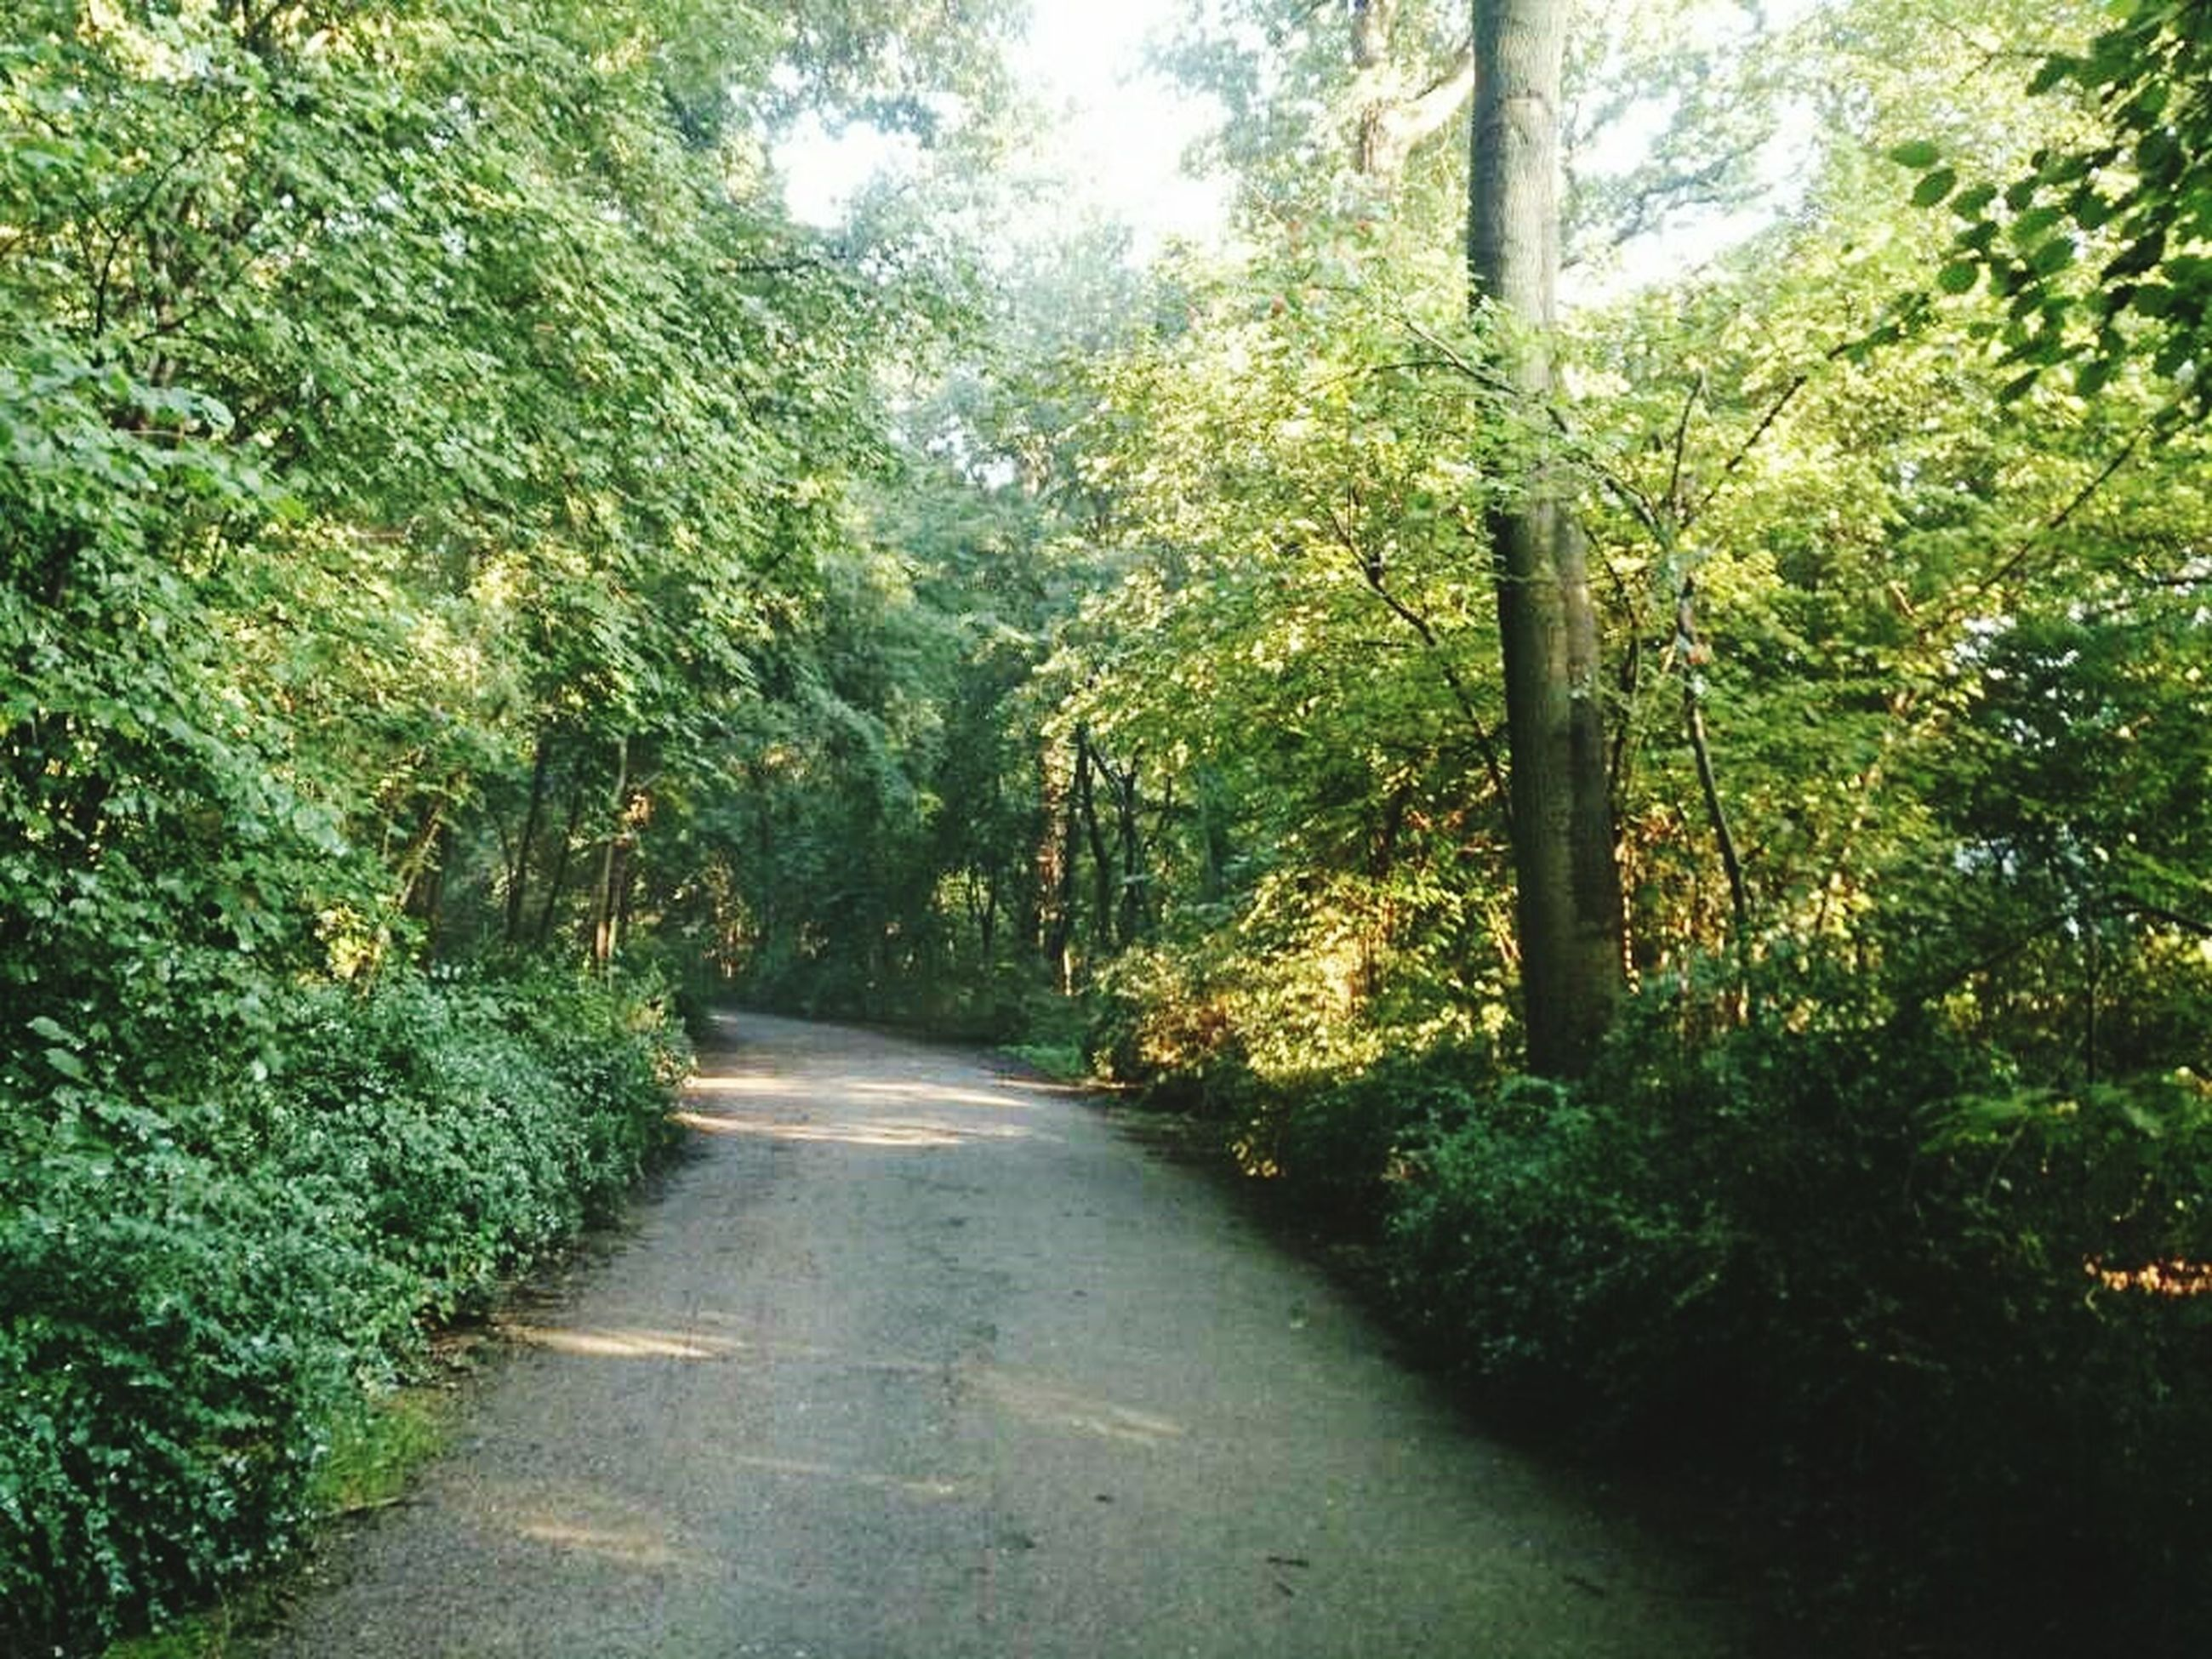 the way forward, tree, diminishing perspective, tranquility, growth, vanishing point, footpath, green color, narrow, nature, tranquil scene, road, plant, dirt road, forest, beauty in nature, pathway, sunlight, day, scenics